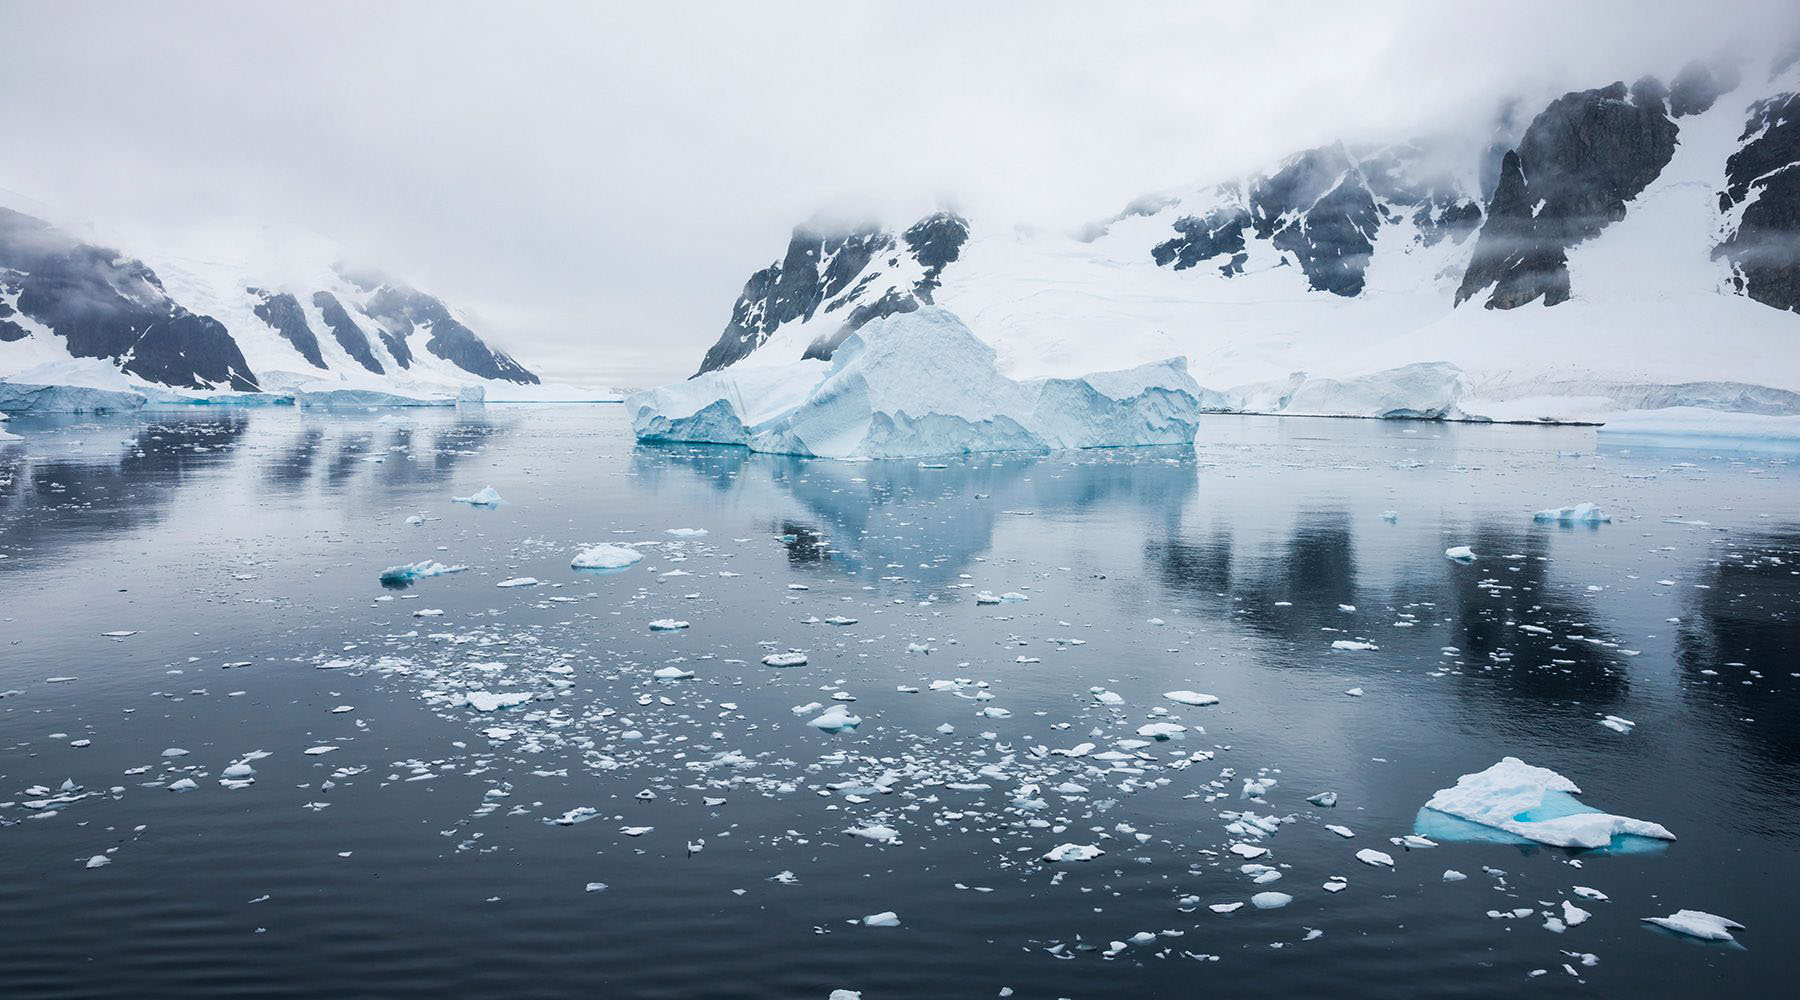 Antarctic Sound/Peninsula